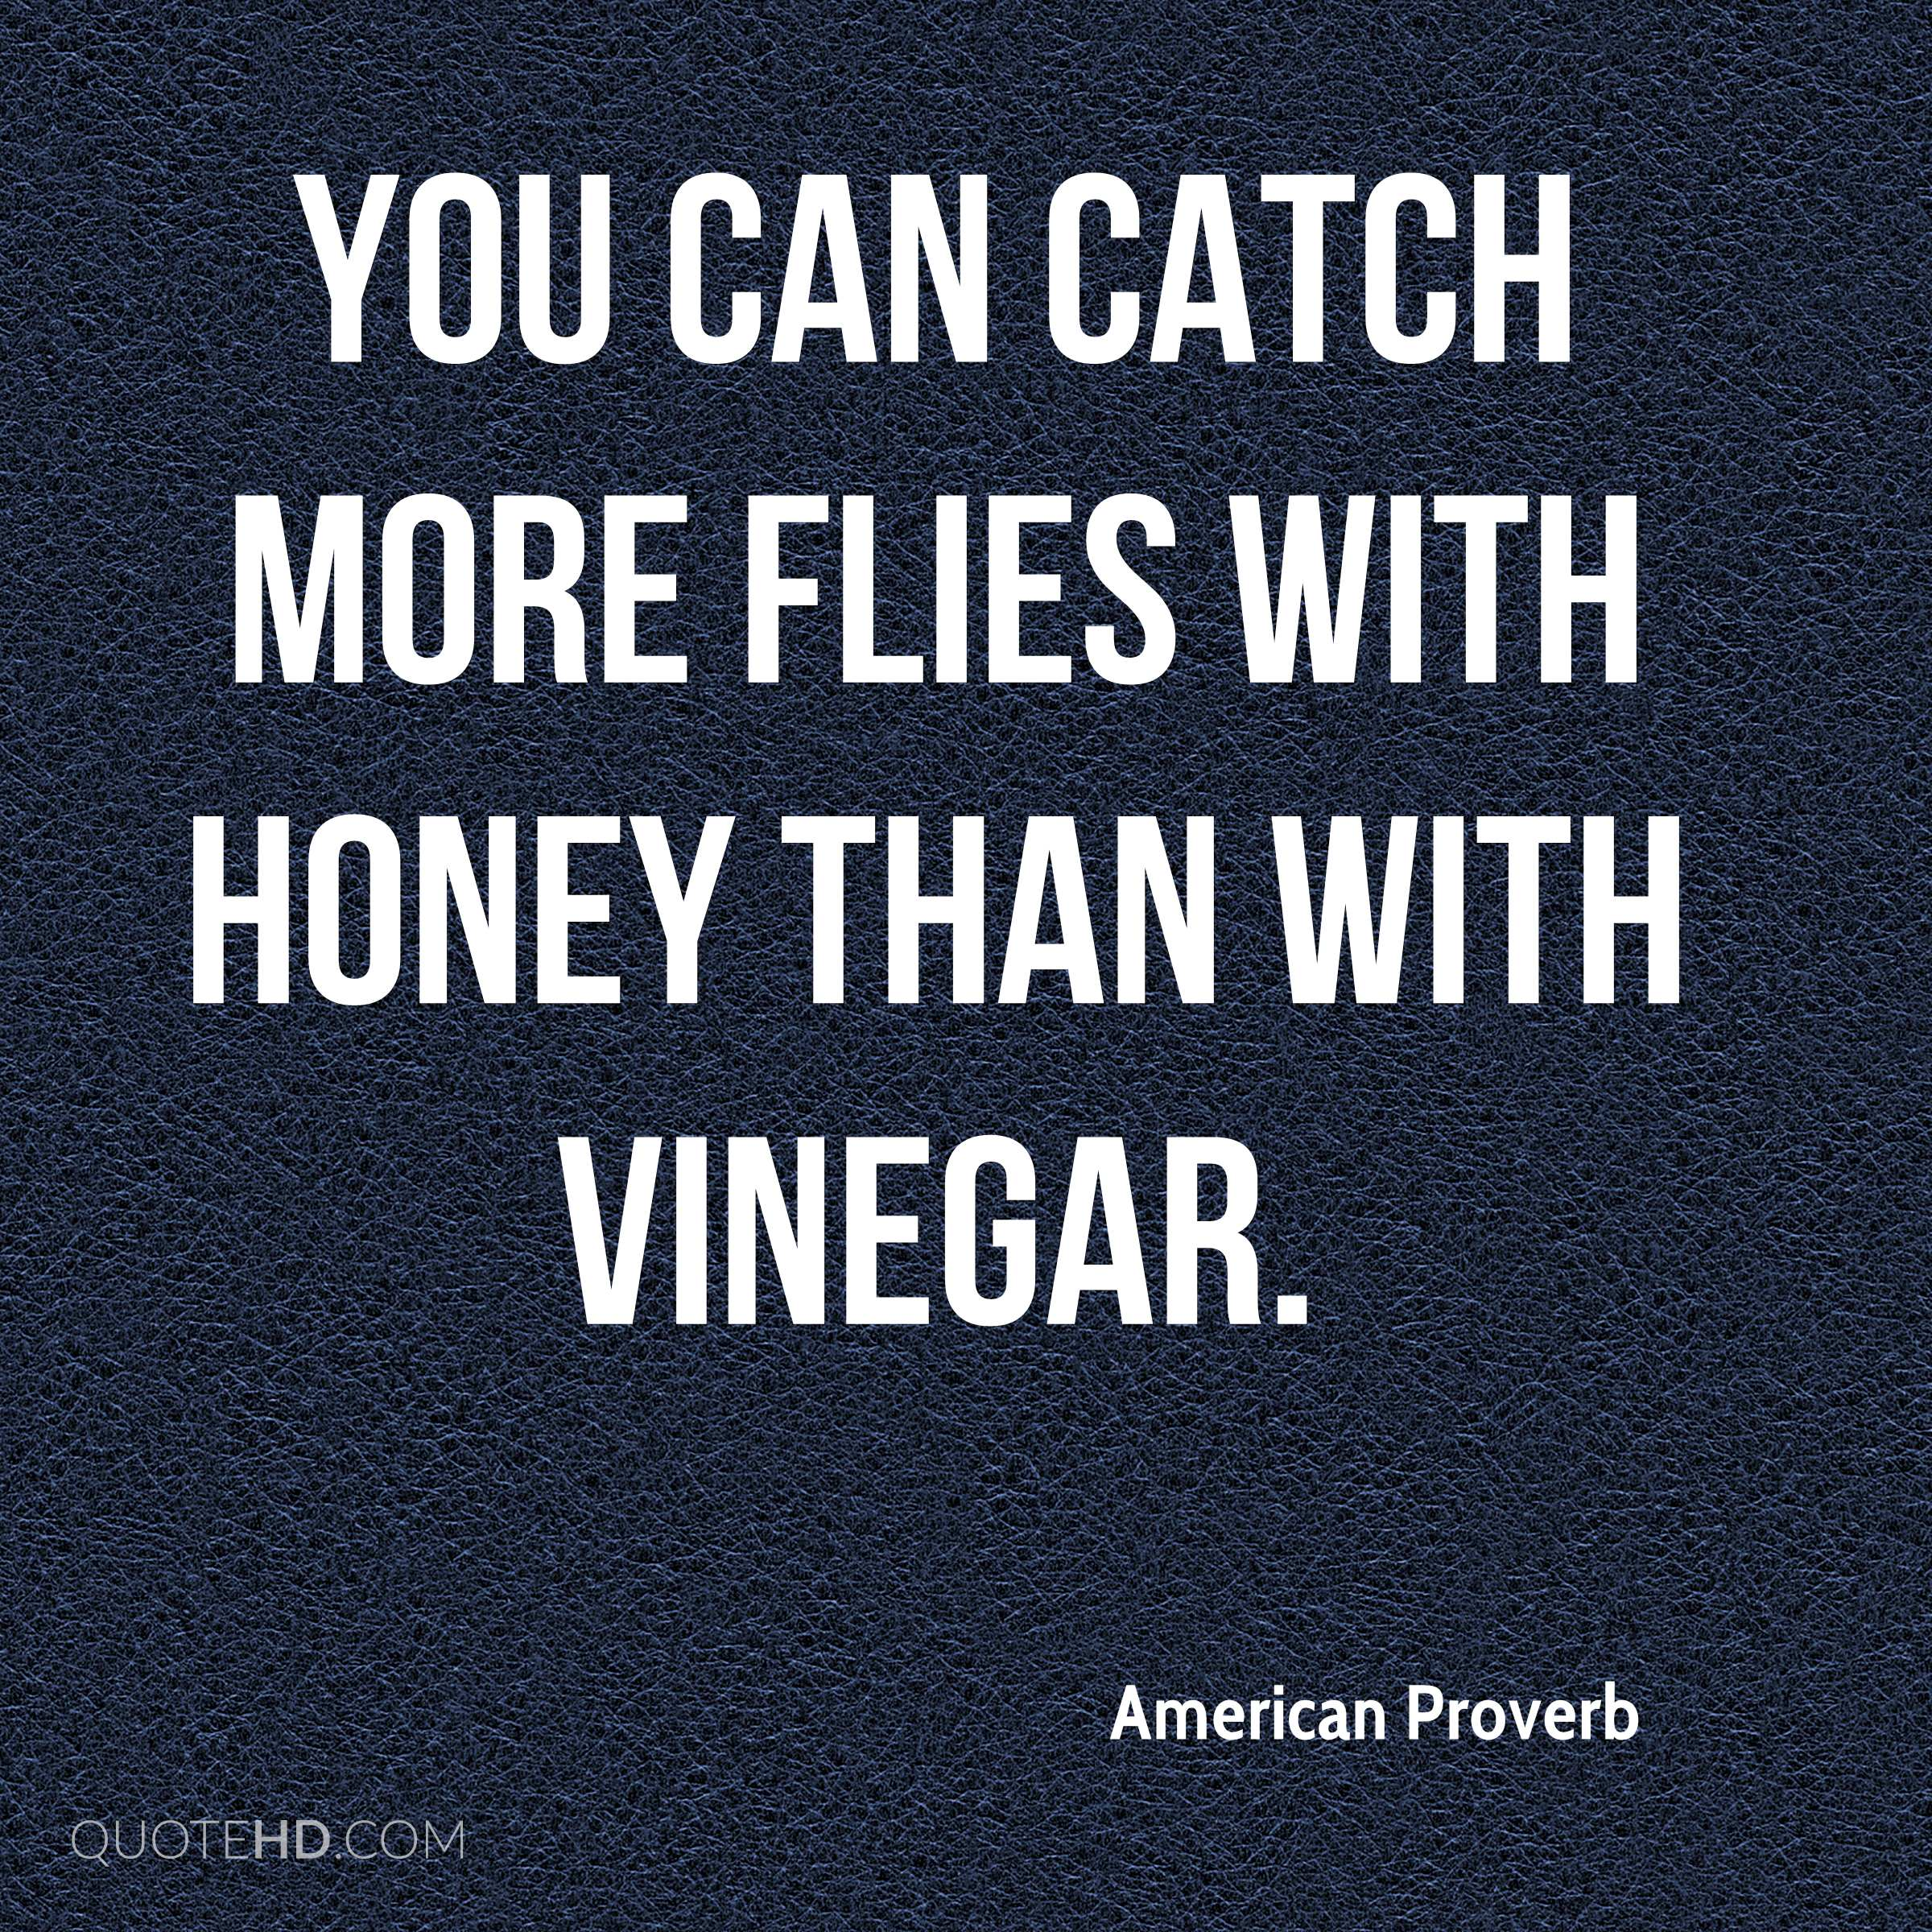 You can catch more flies with honey than with vinegar.